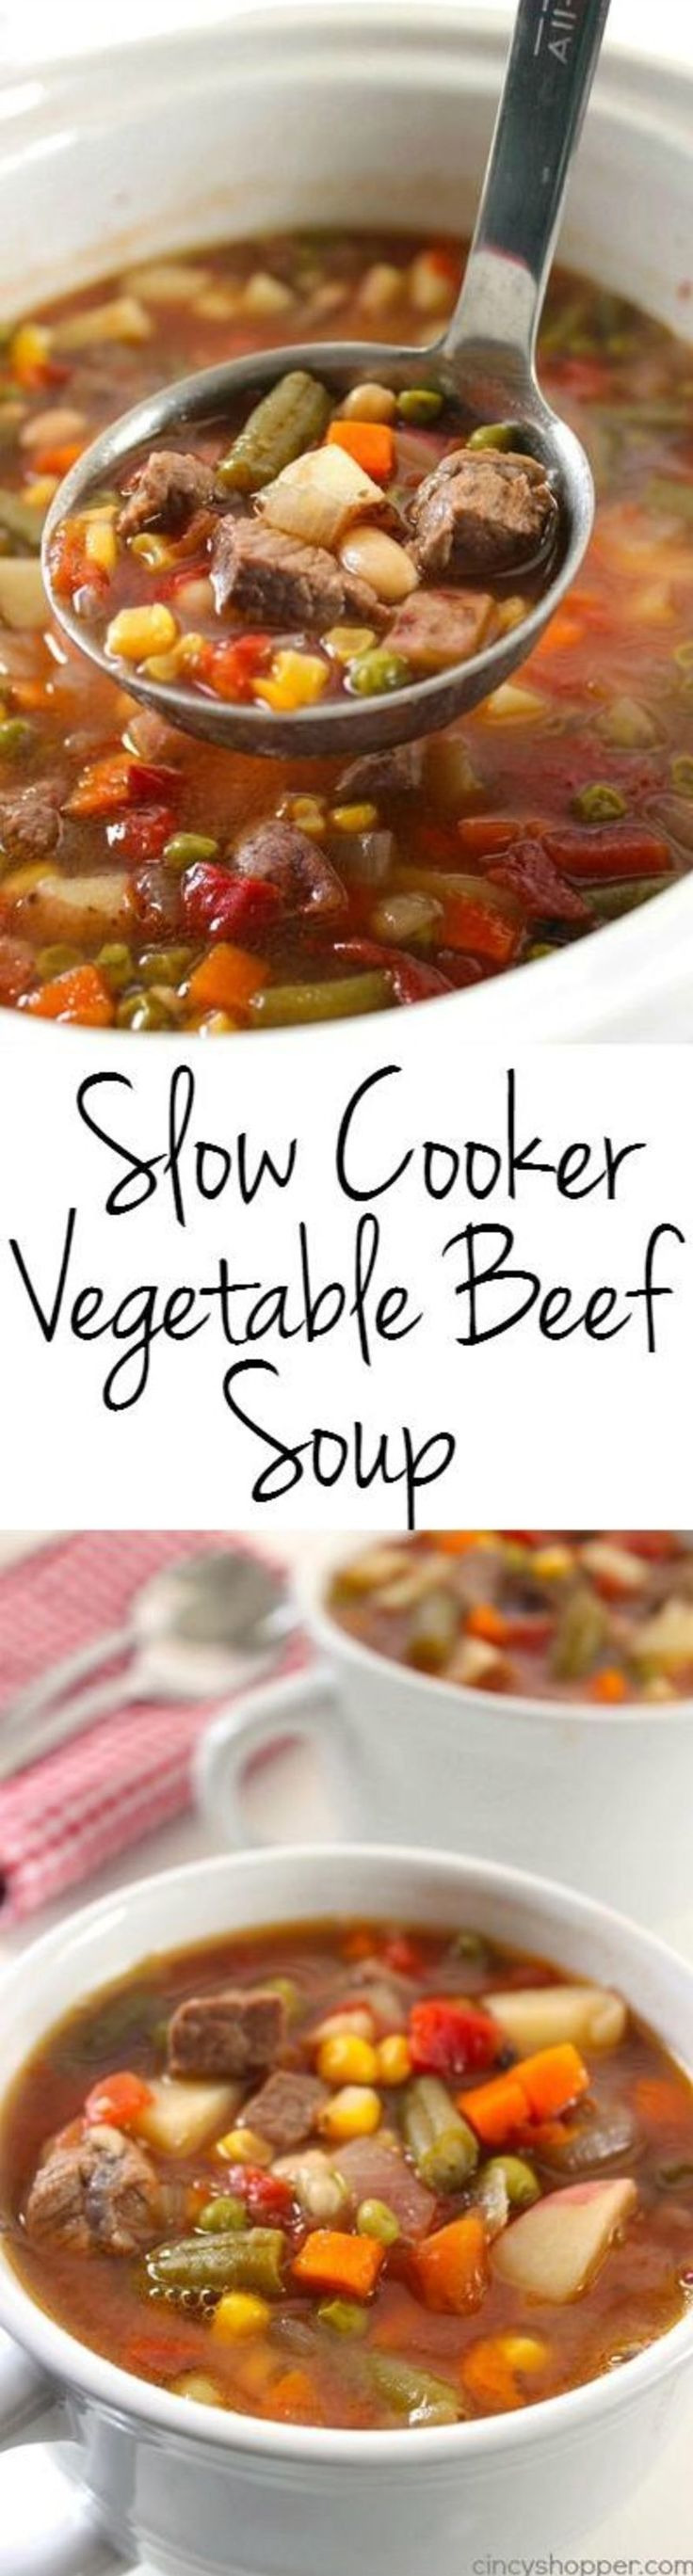 9. Crock Pot Vegetable Beef Soup!